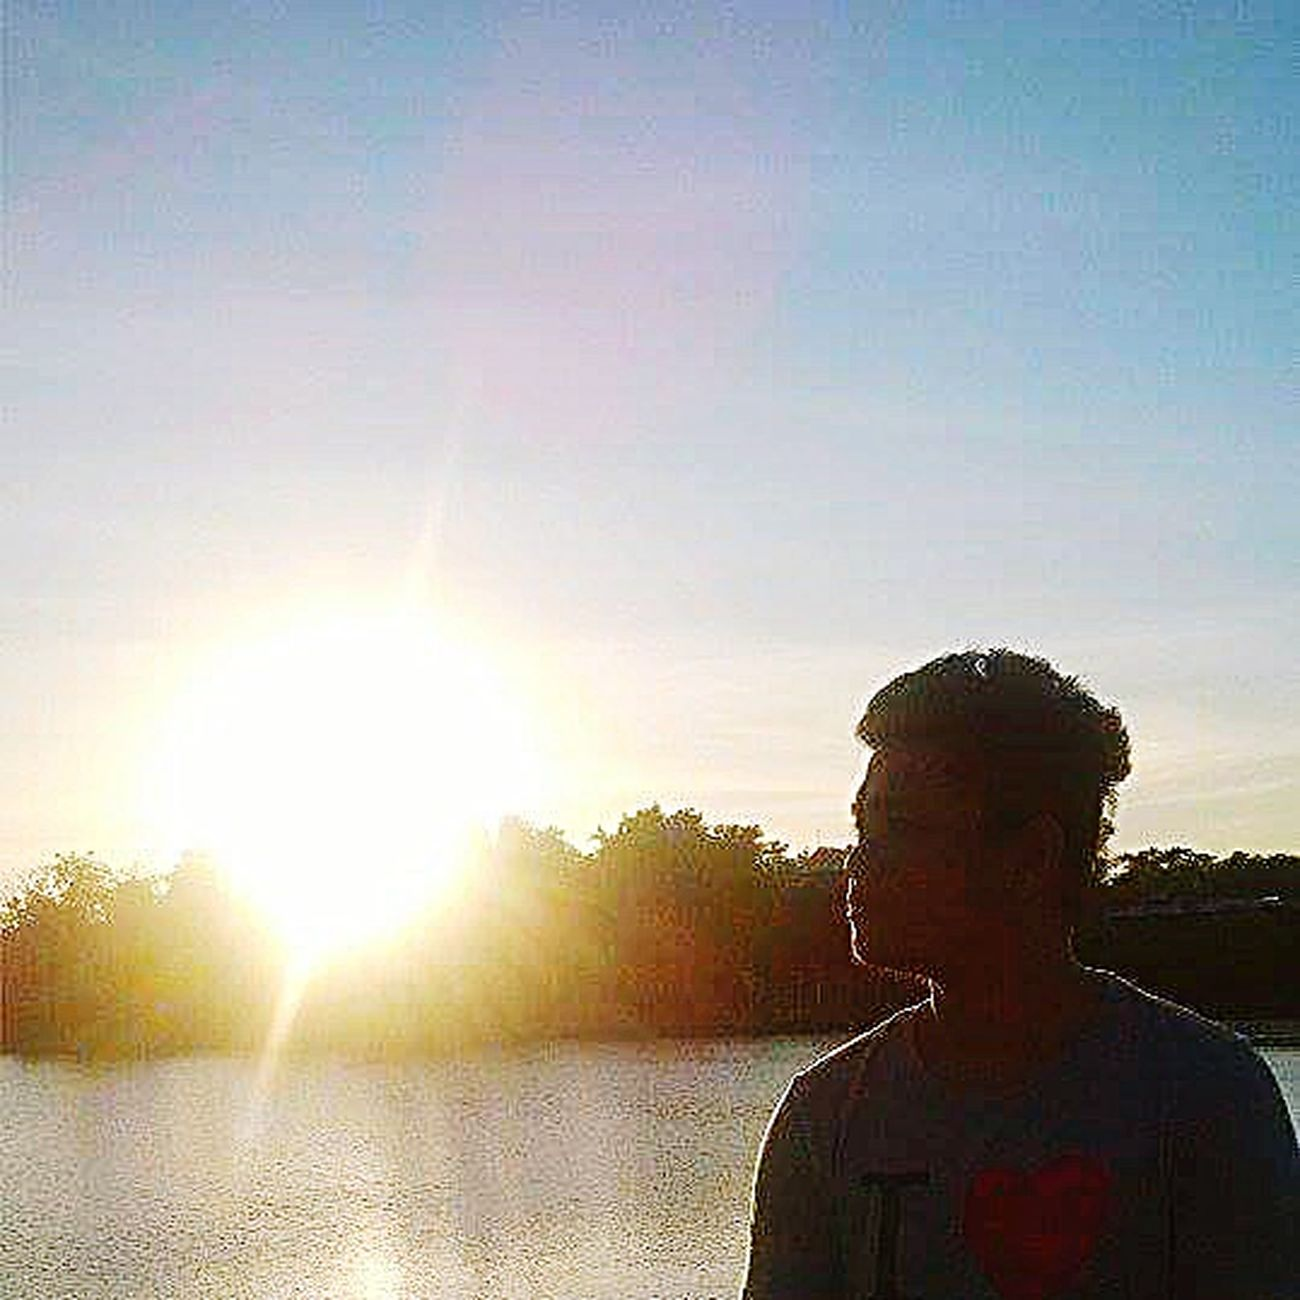 Sunset Nueva Ecija Boyfriend Eyeem Philippines Eyemcaptured Bonding Vacation 042715 Captured By Me Captured Moment